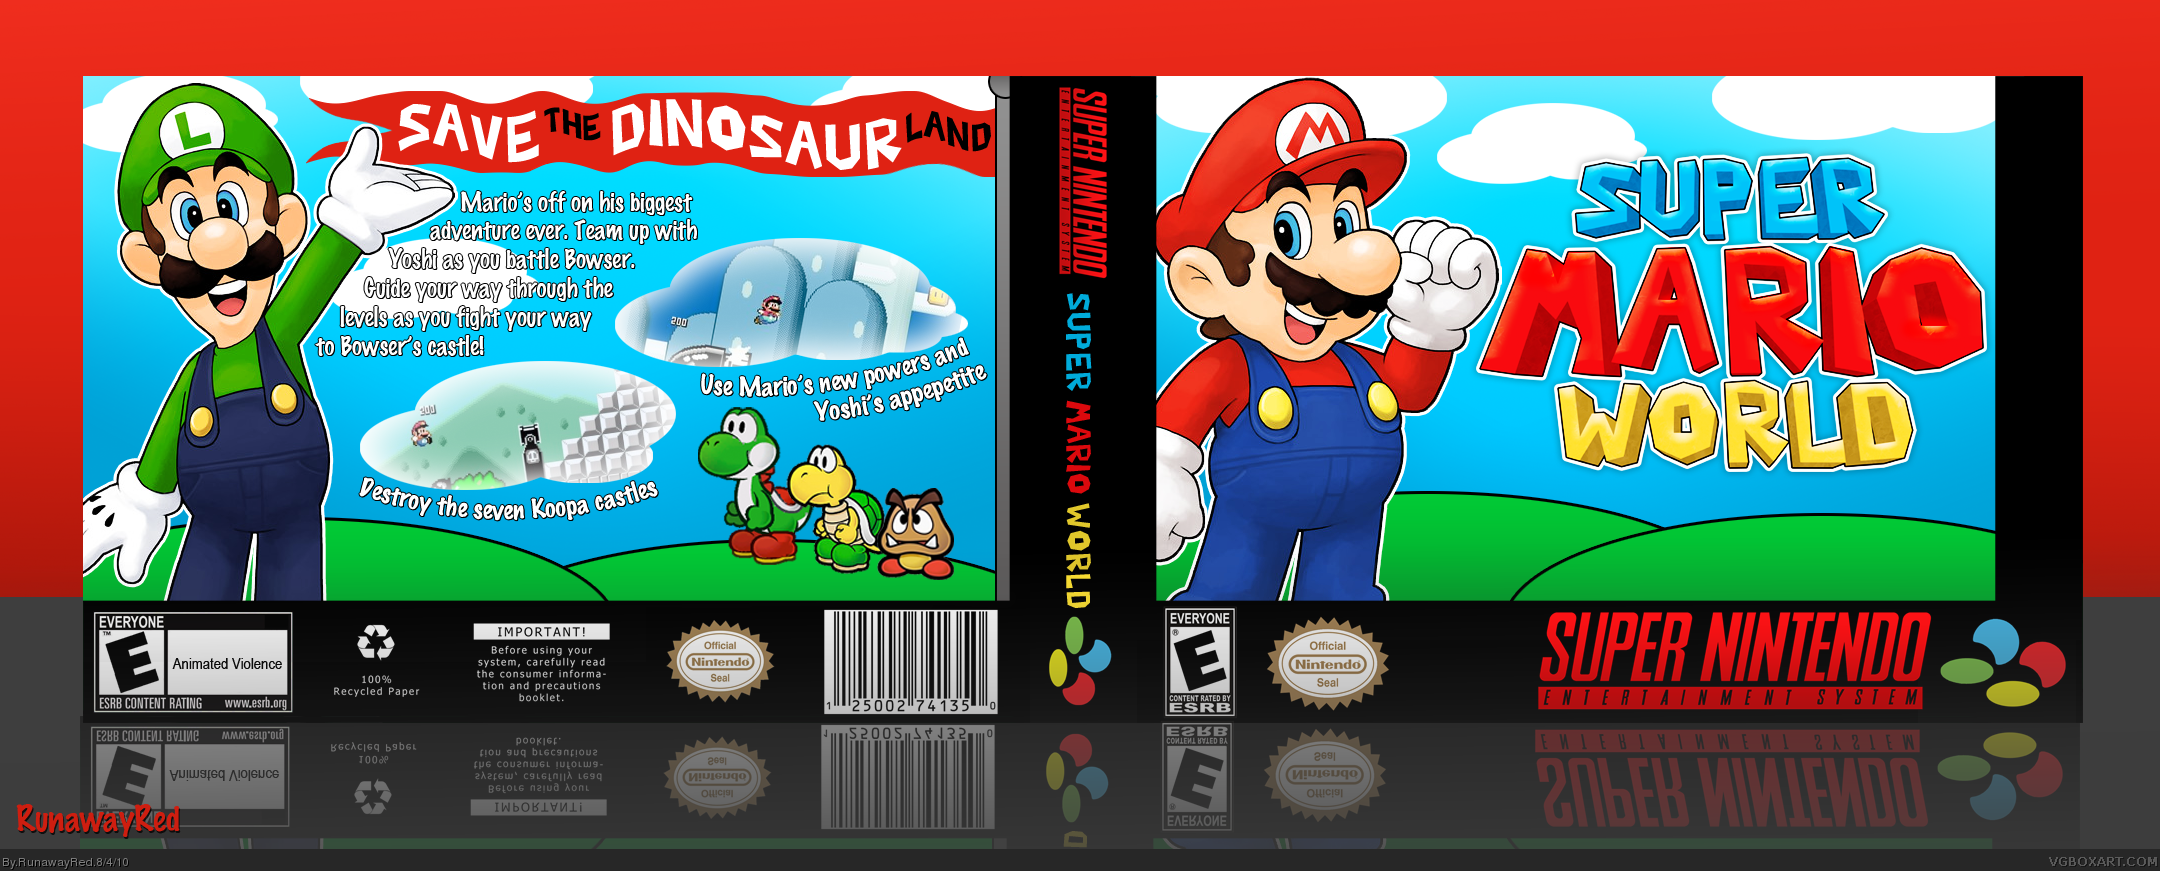 Super Mario World box cover